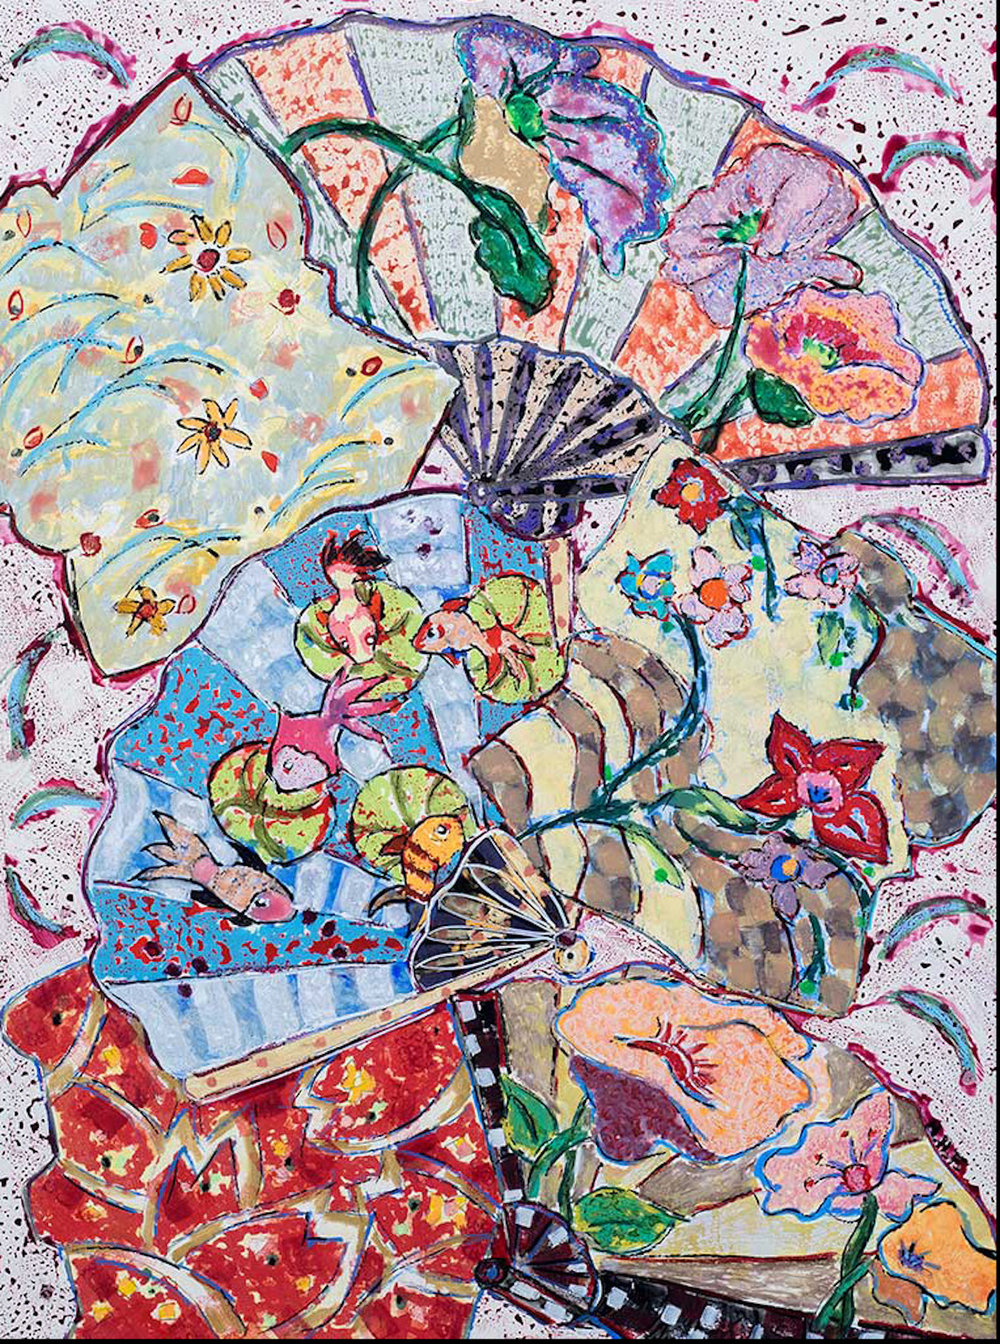 Nan Hass Feldman,  Fantasia with Fish and Fans , Mixed-media, 24x18